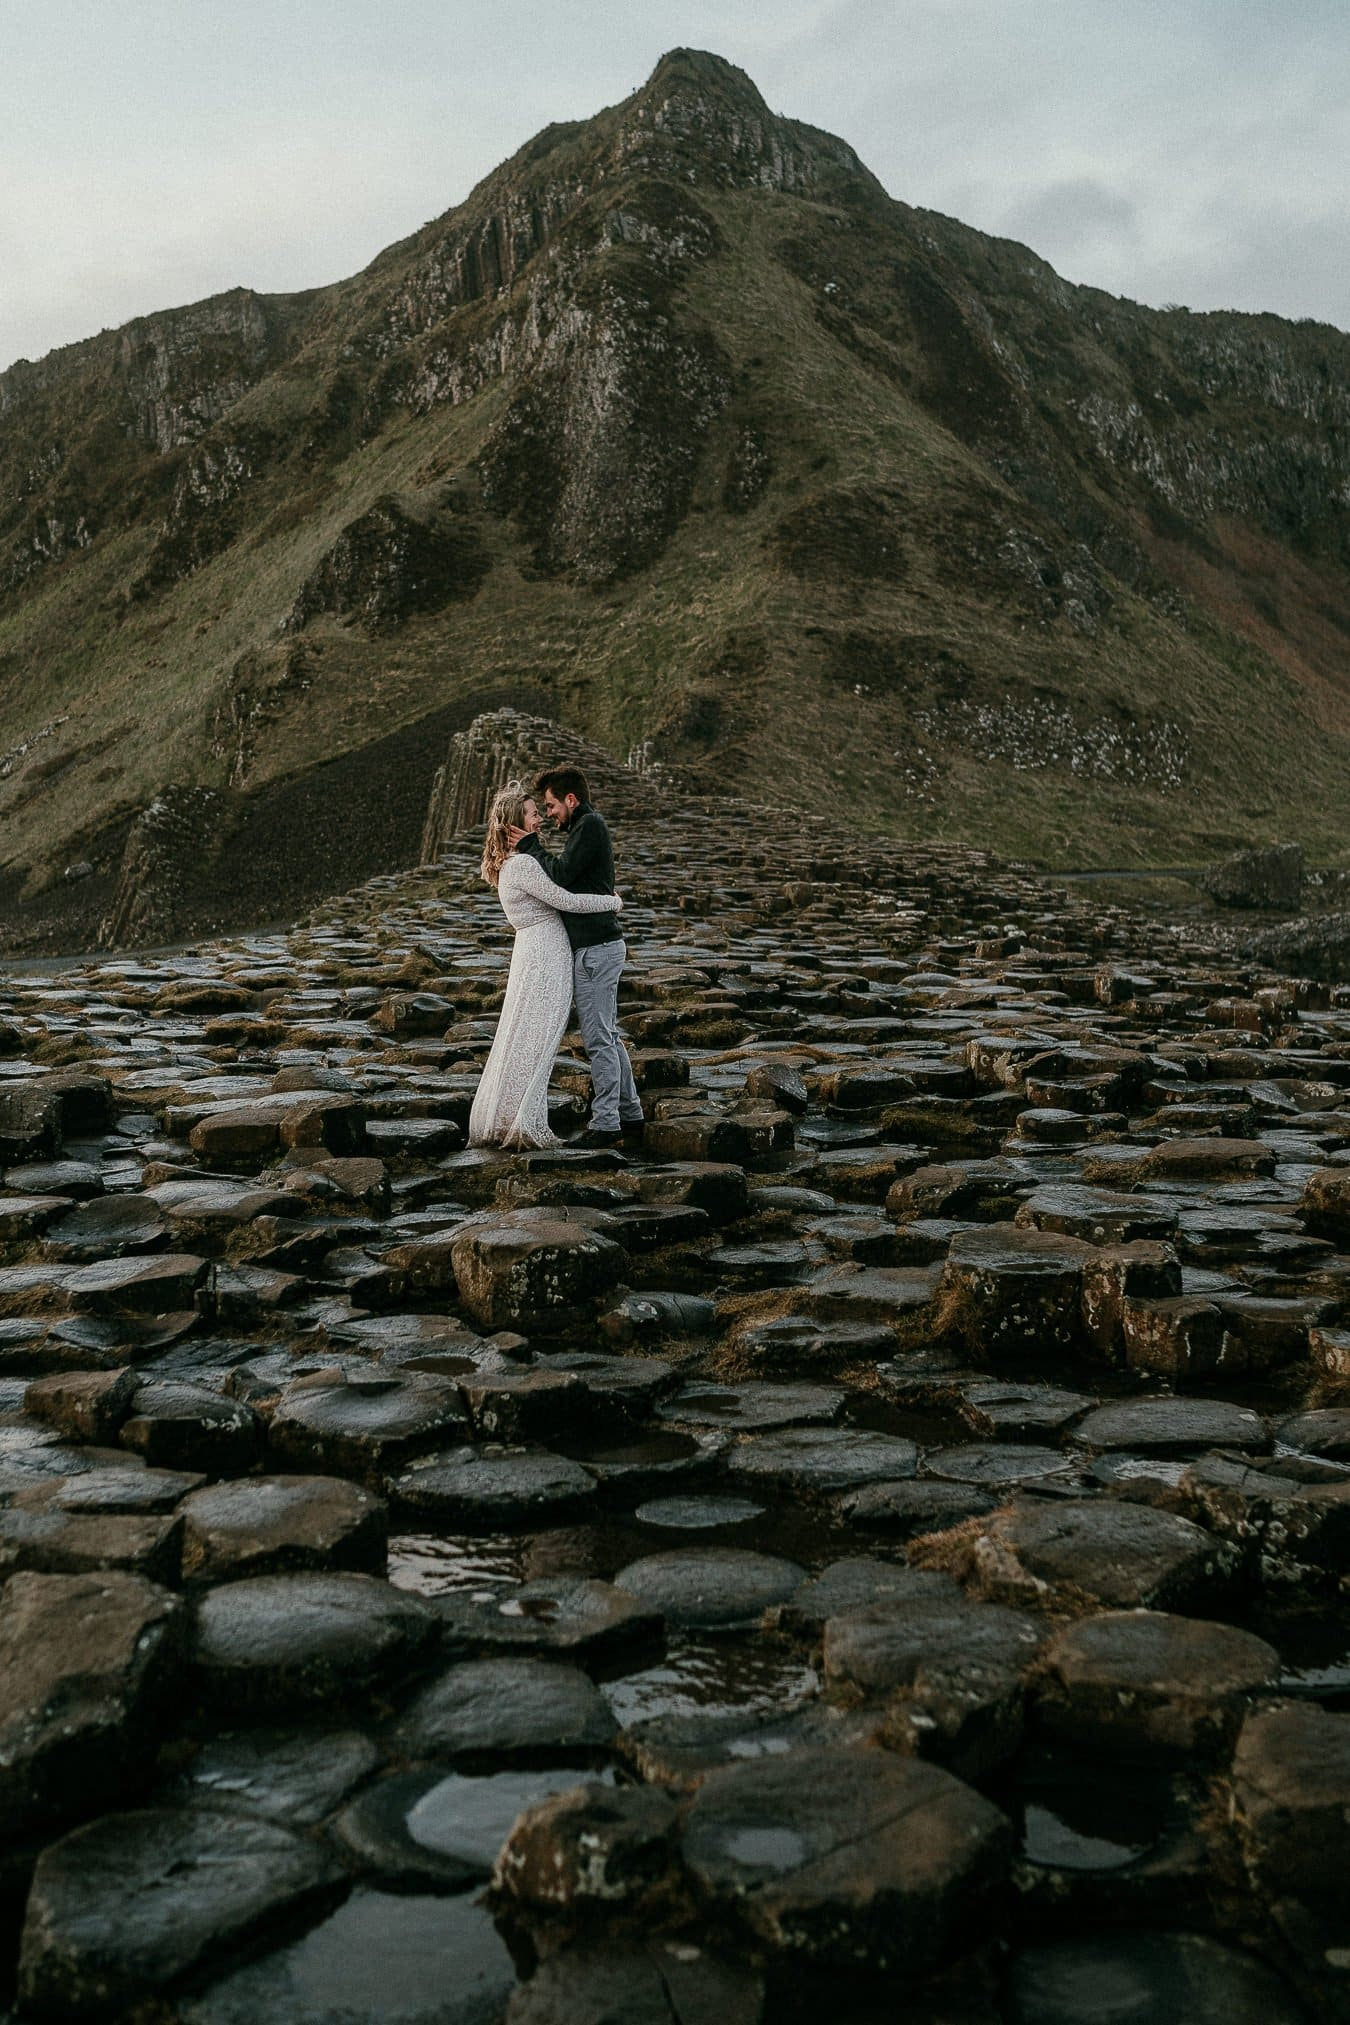 Northern Ireland elopement photographer Irish elopements Small weddings